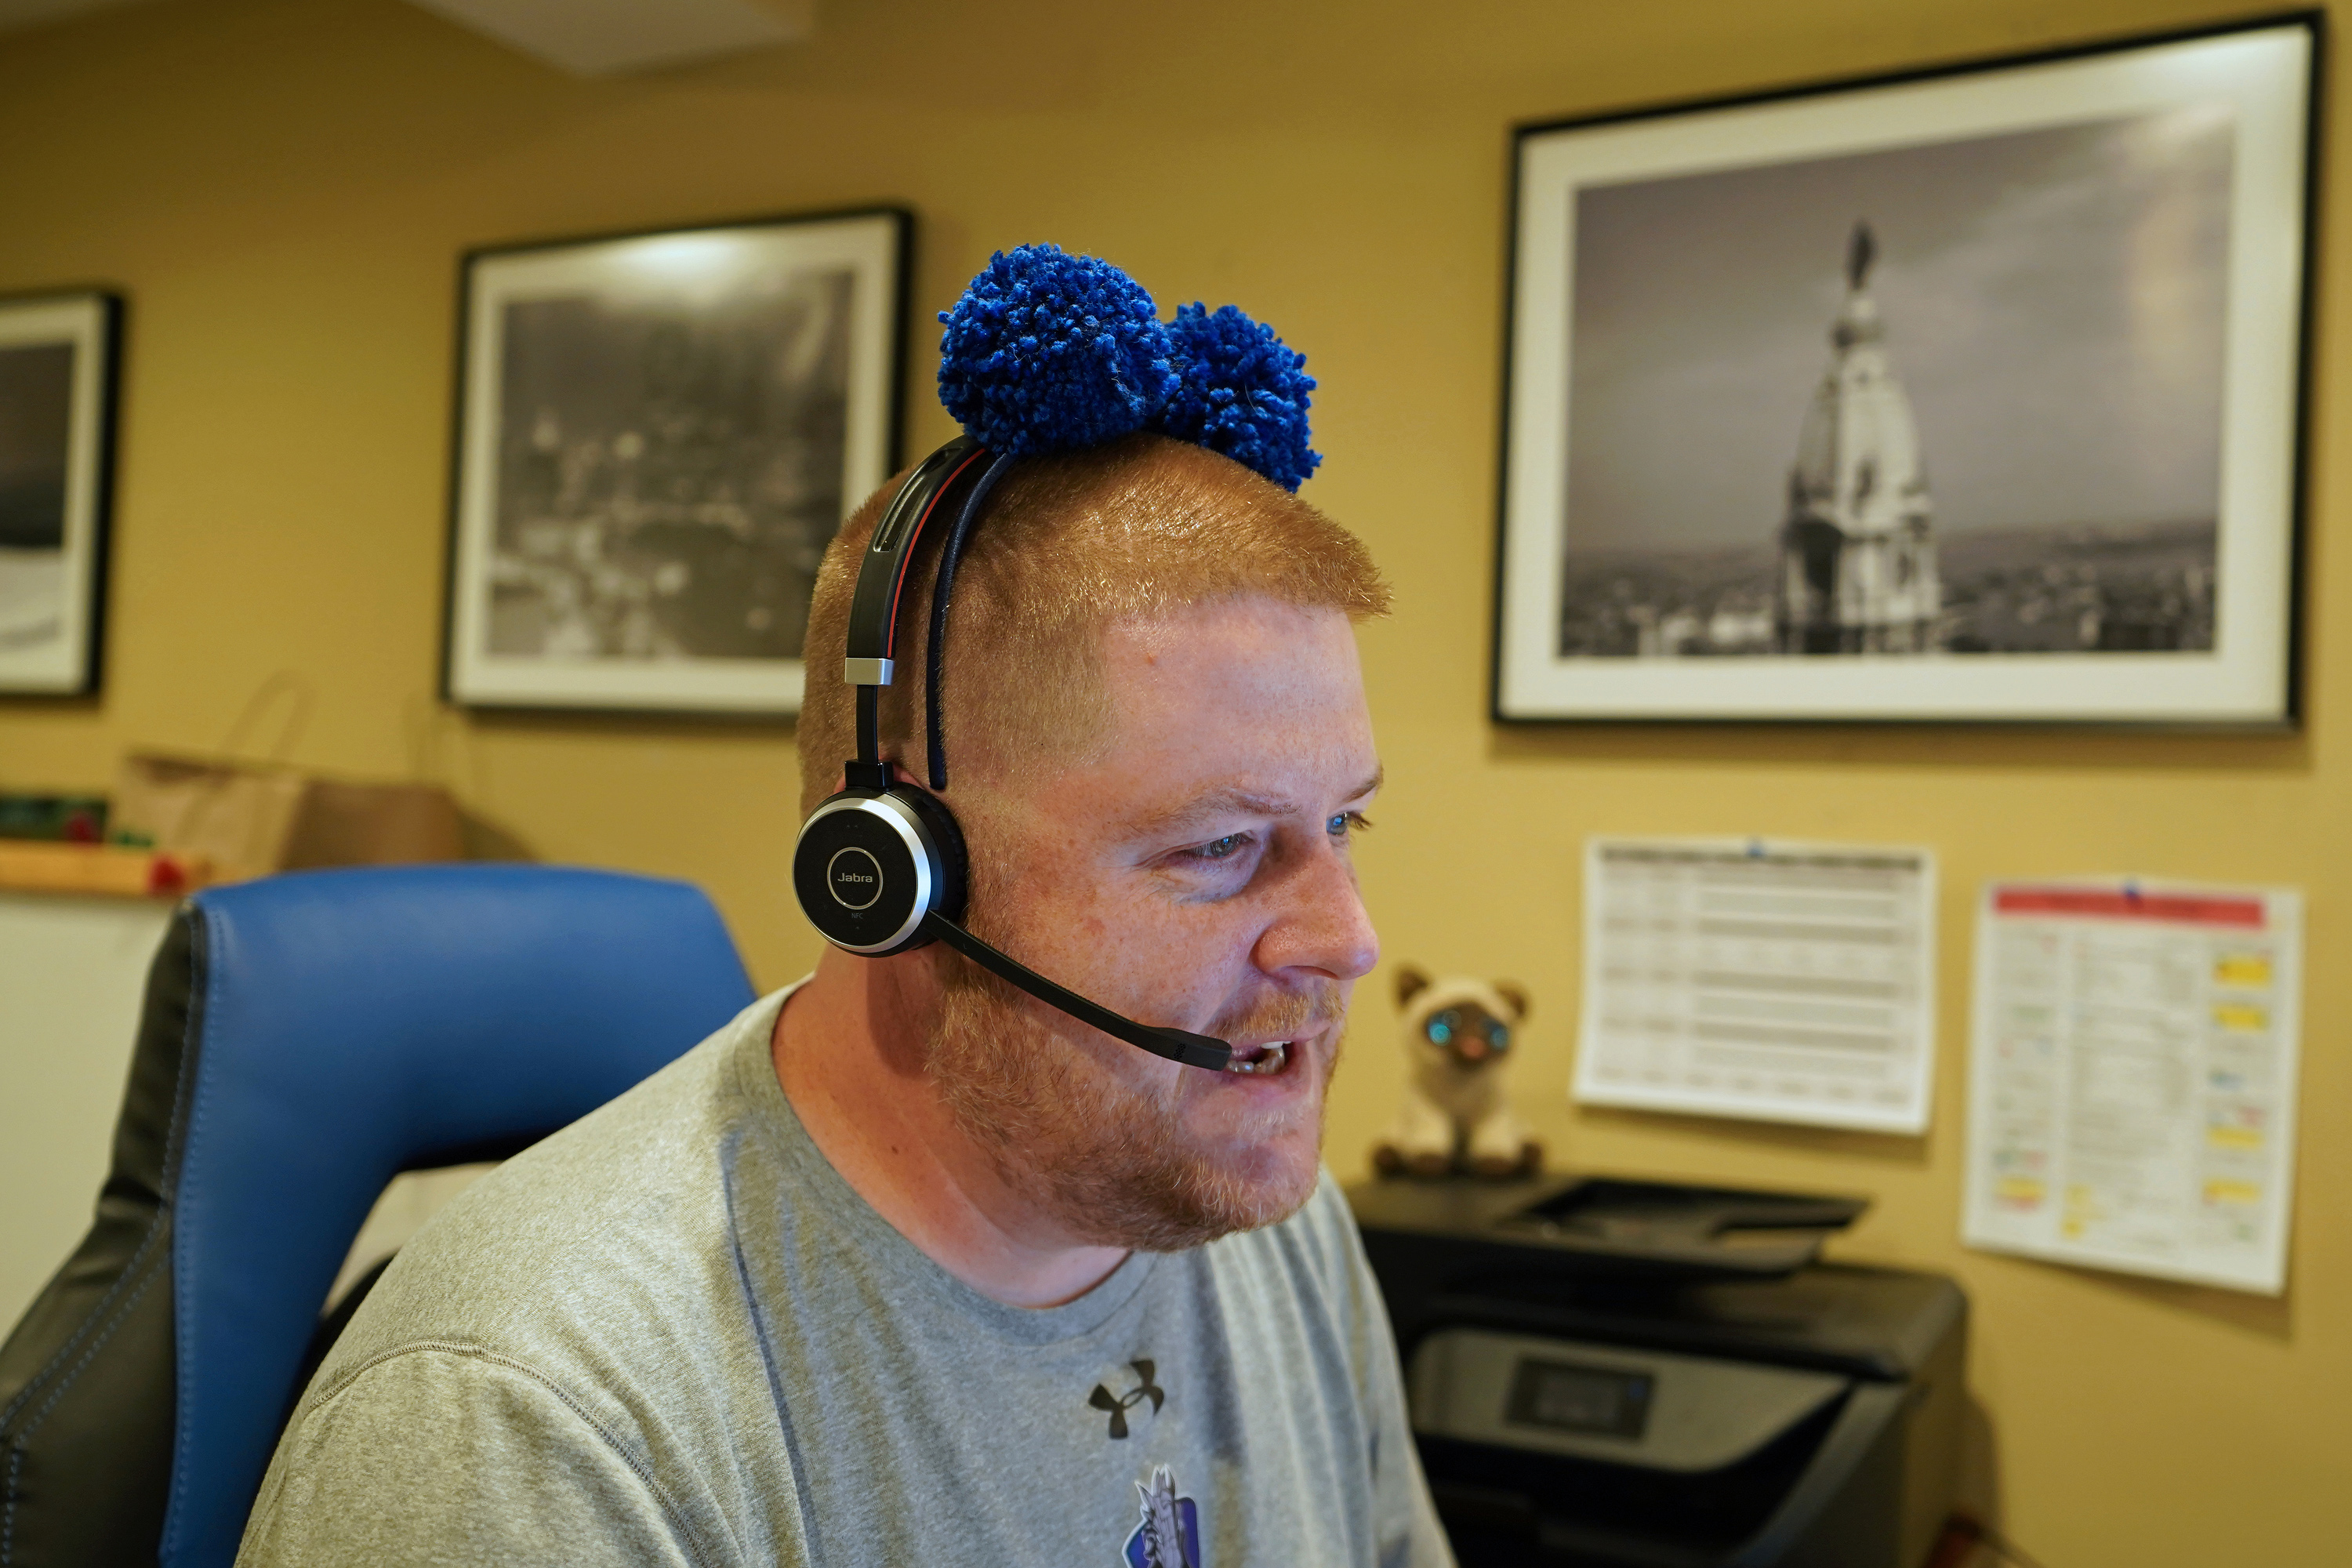 Kyle Wilson wears a headband he sometimes uses for levity with students as he works at his desk